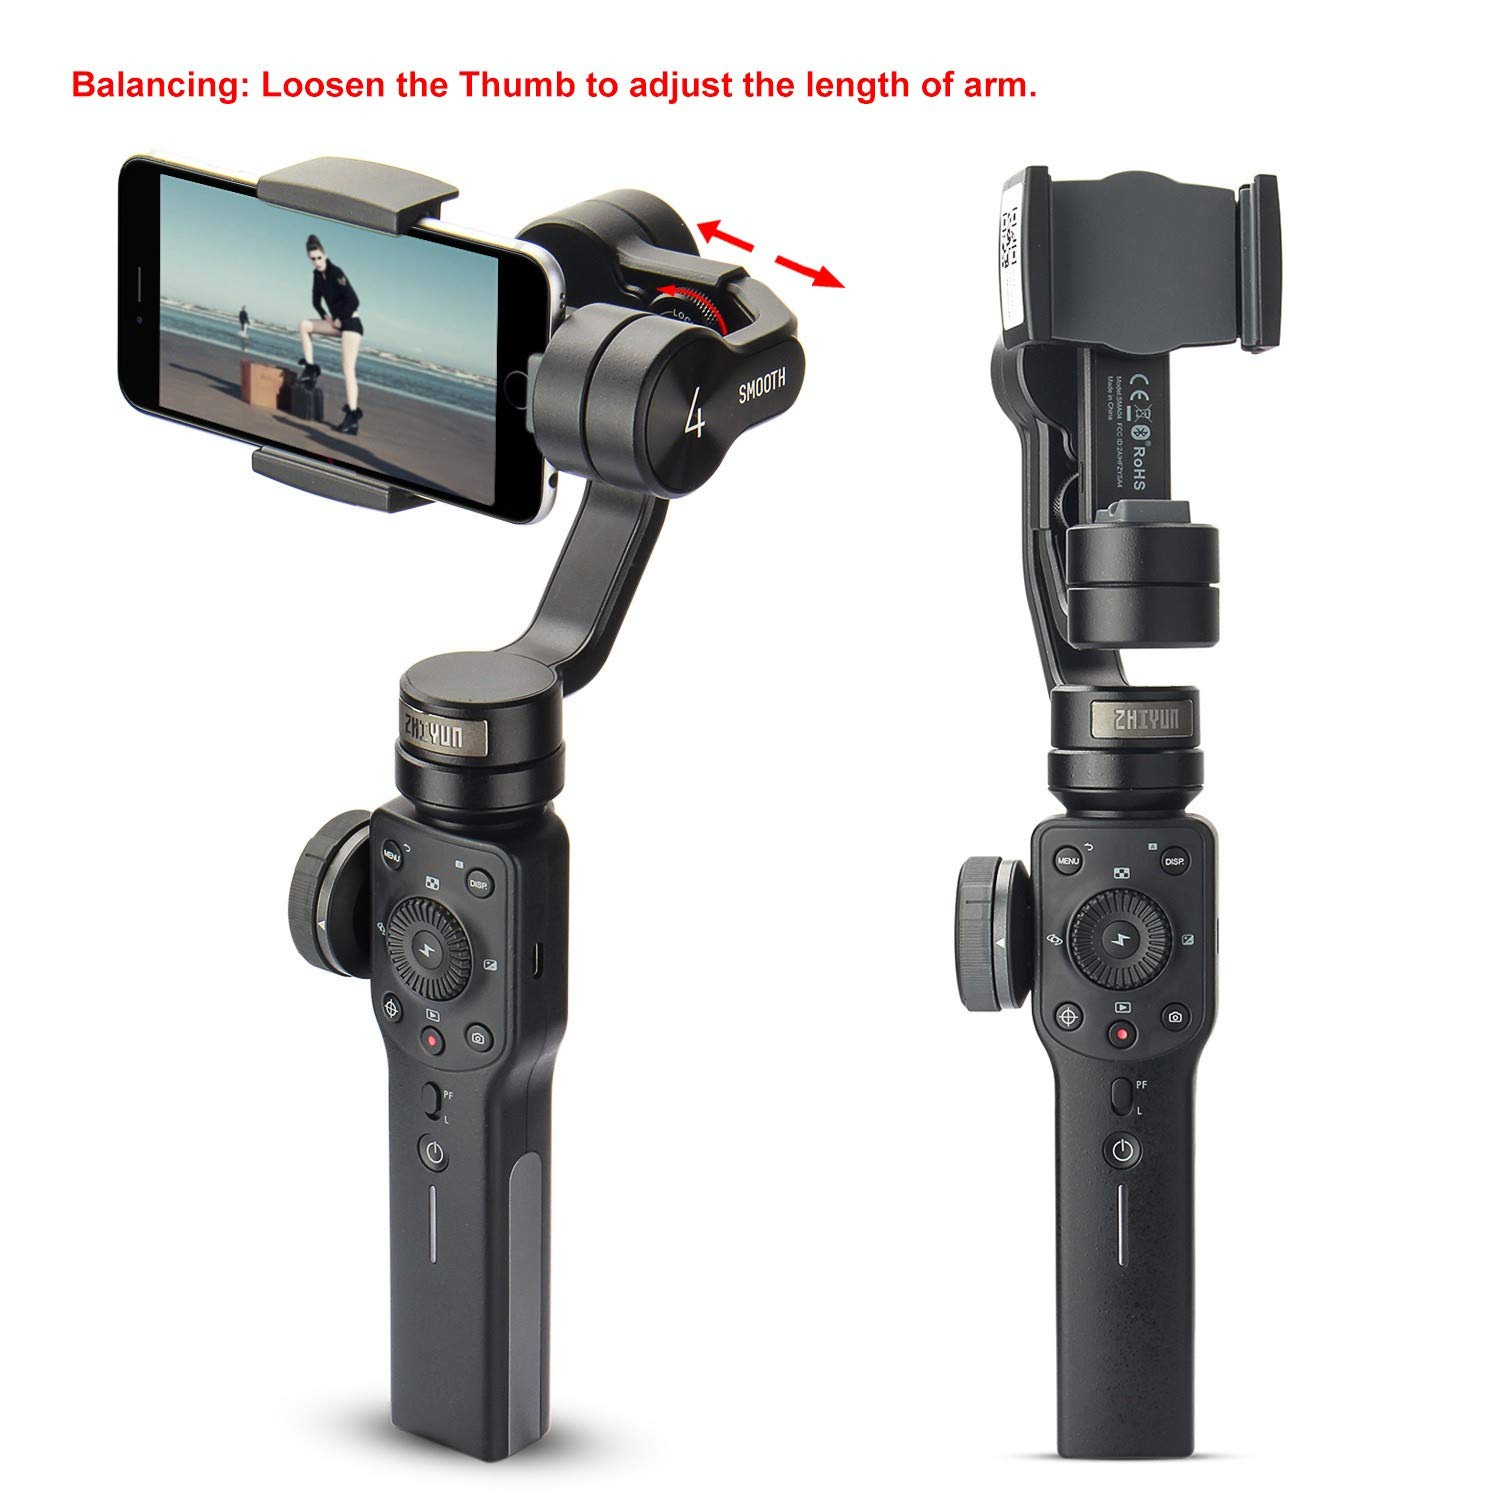 d93f7ba42 Amazon.com : Zhiyun Smooth 4 3-Axis Handheld Gimbal Stabilizer w/Focus Pull  & Zoom for iPhone Xs Max Xr X 8 Plus 7 6 SE Android Smartphone Samsung  Galaxy ...